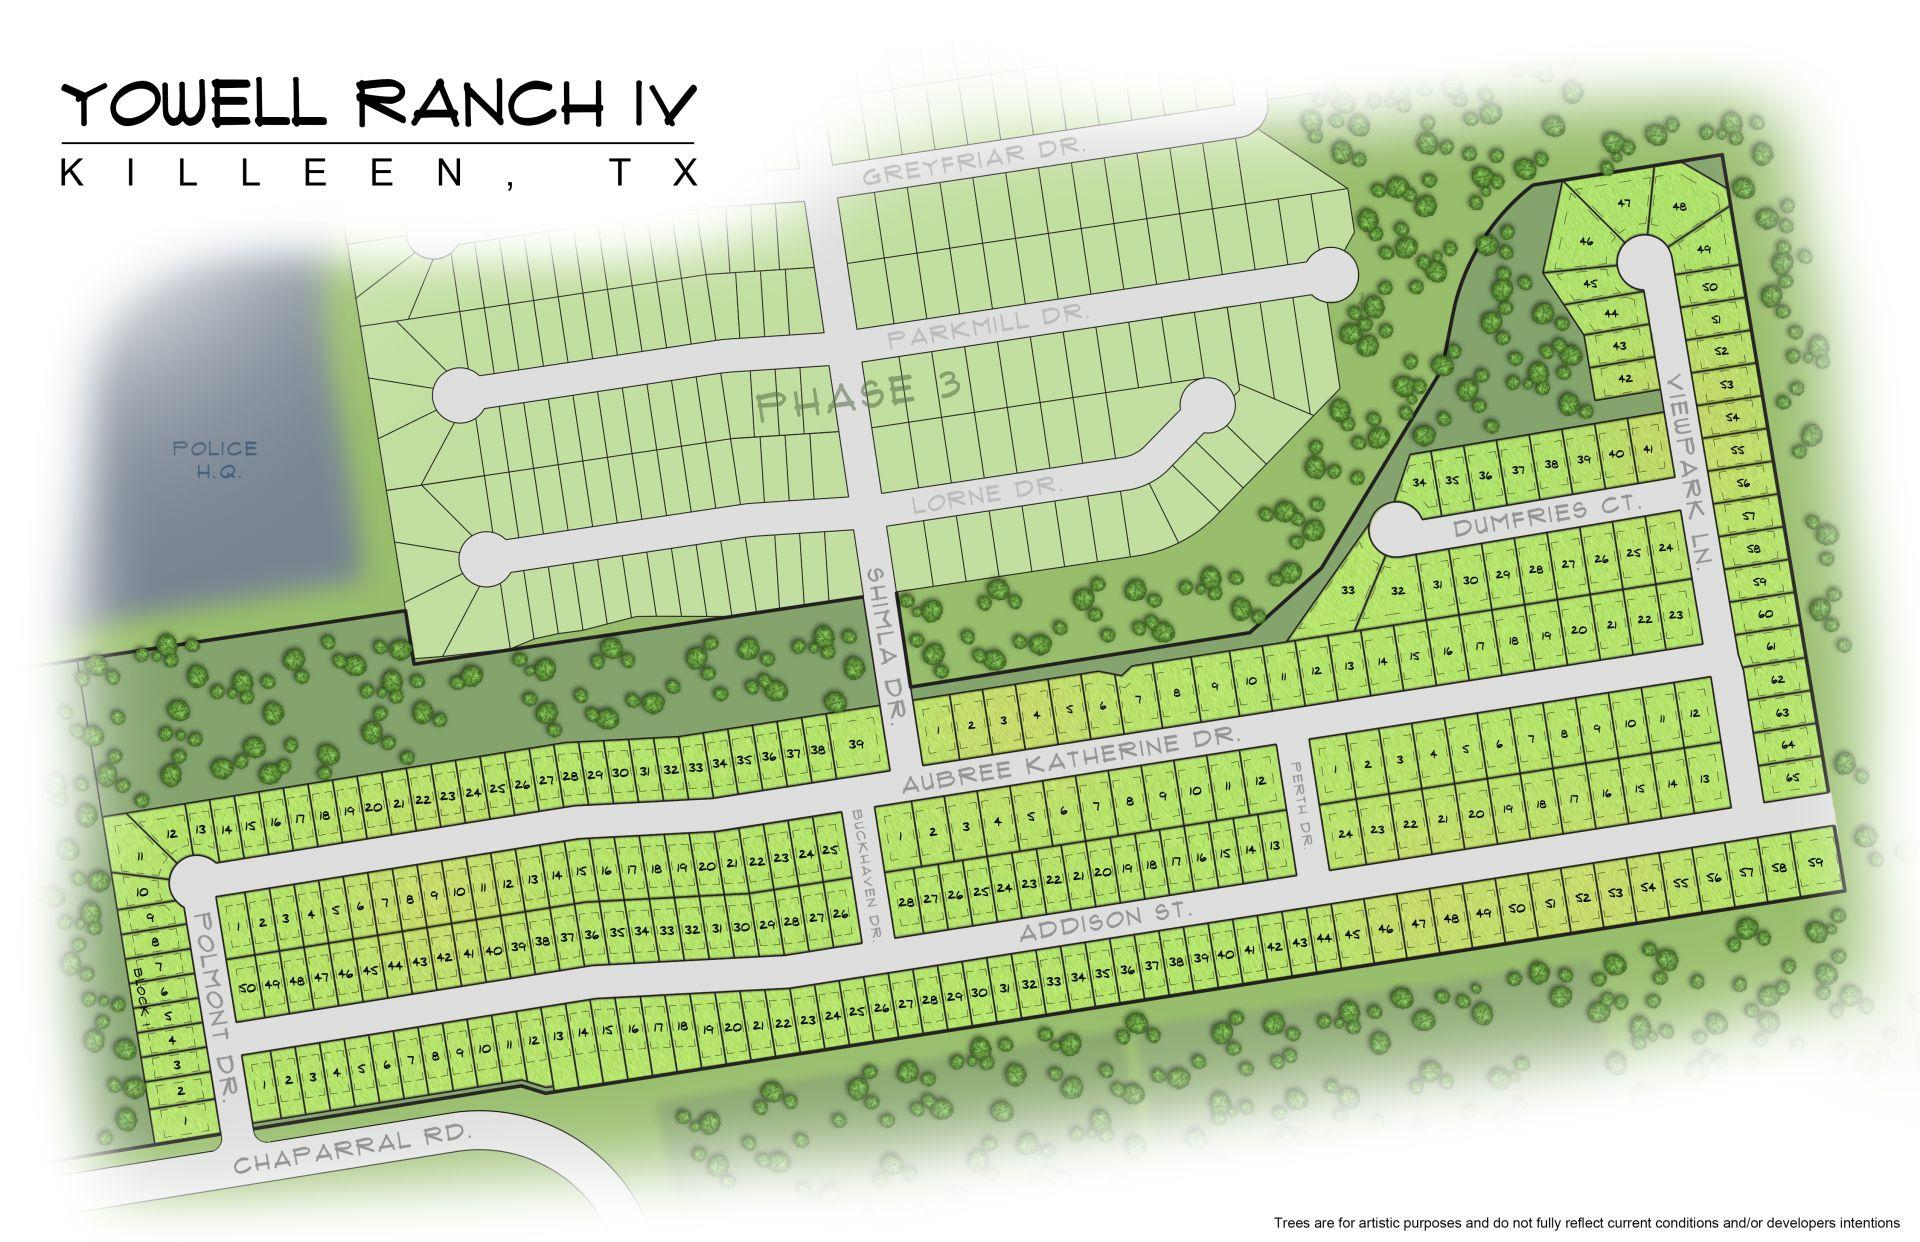 Killeen, TX Yowell Ranch New Homes from Stylecraft Builders